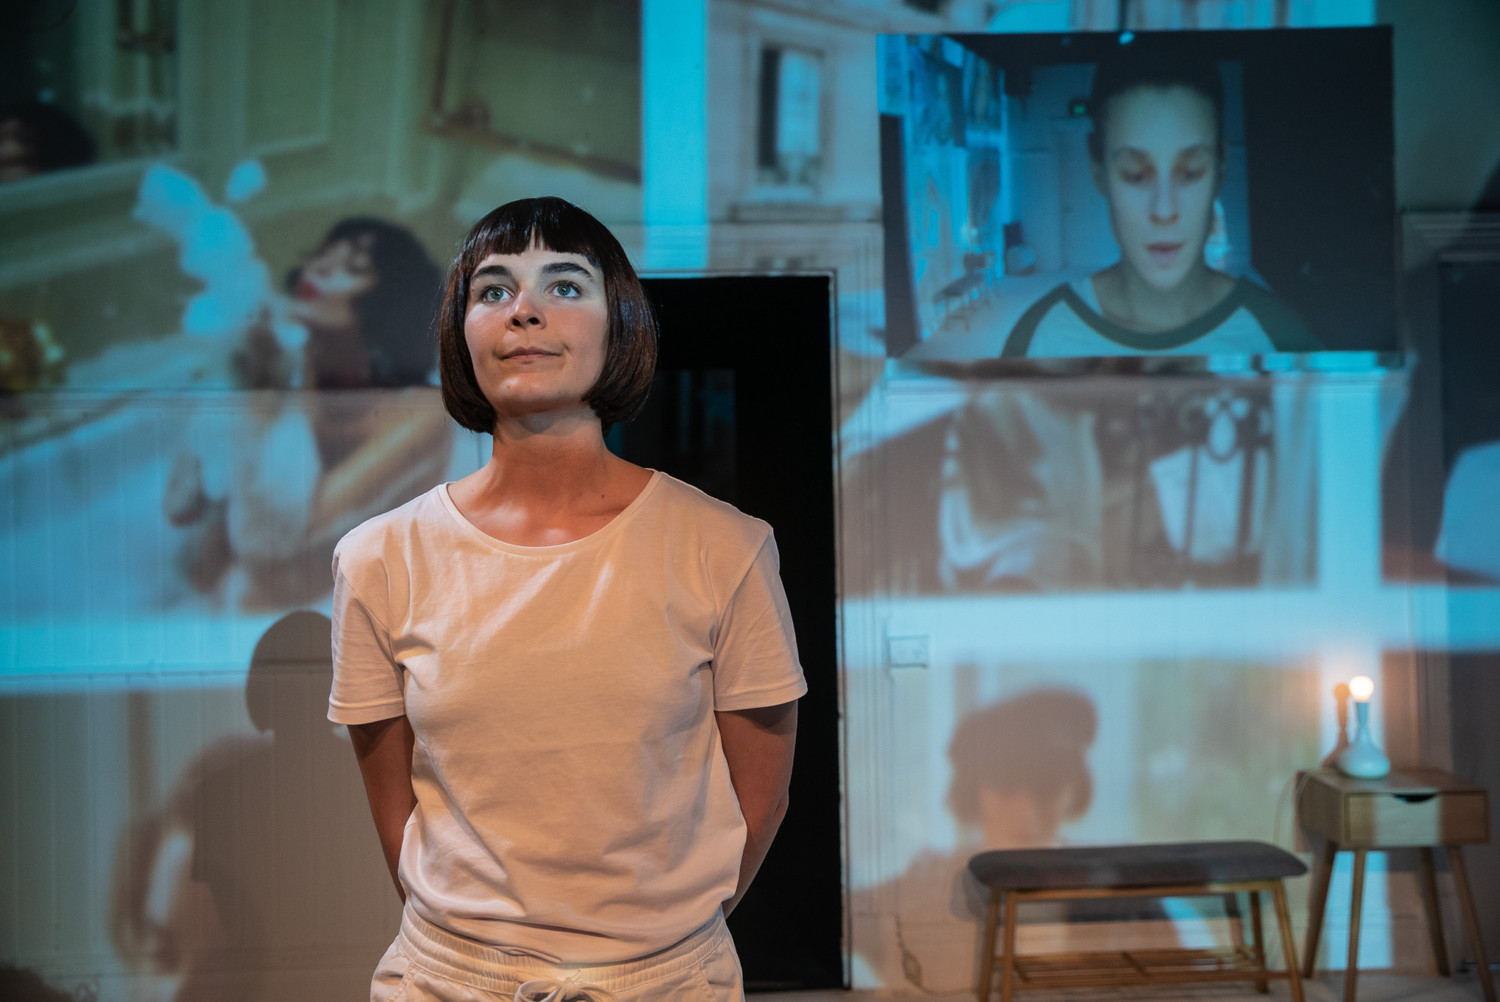 BWW Review: THE DOUBLE at The Blue Room